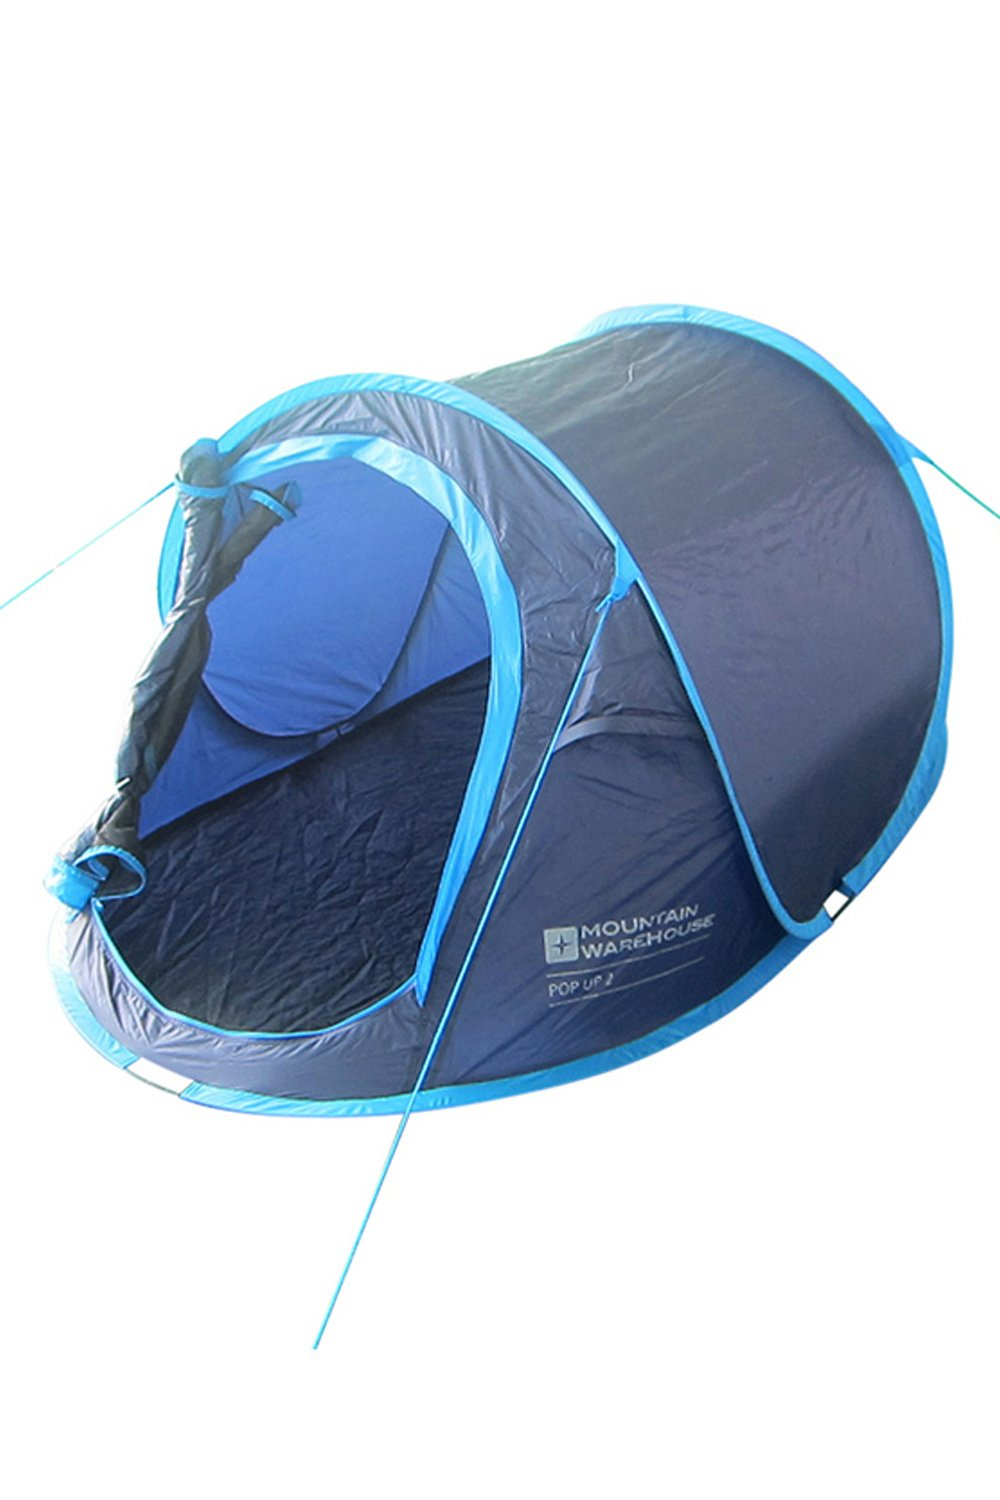 Mountain Warehouse Pop-Up Tent - Groundsheet, 2 Man Single Skin Camping Tent, Water Resistant Family Tent, Breathable and Lightweight - Ideal for Summer Festivals, Outdoors Outdoors Blue 023701006001